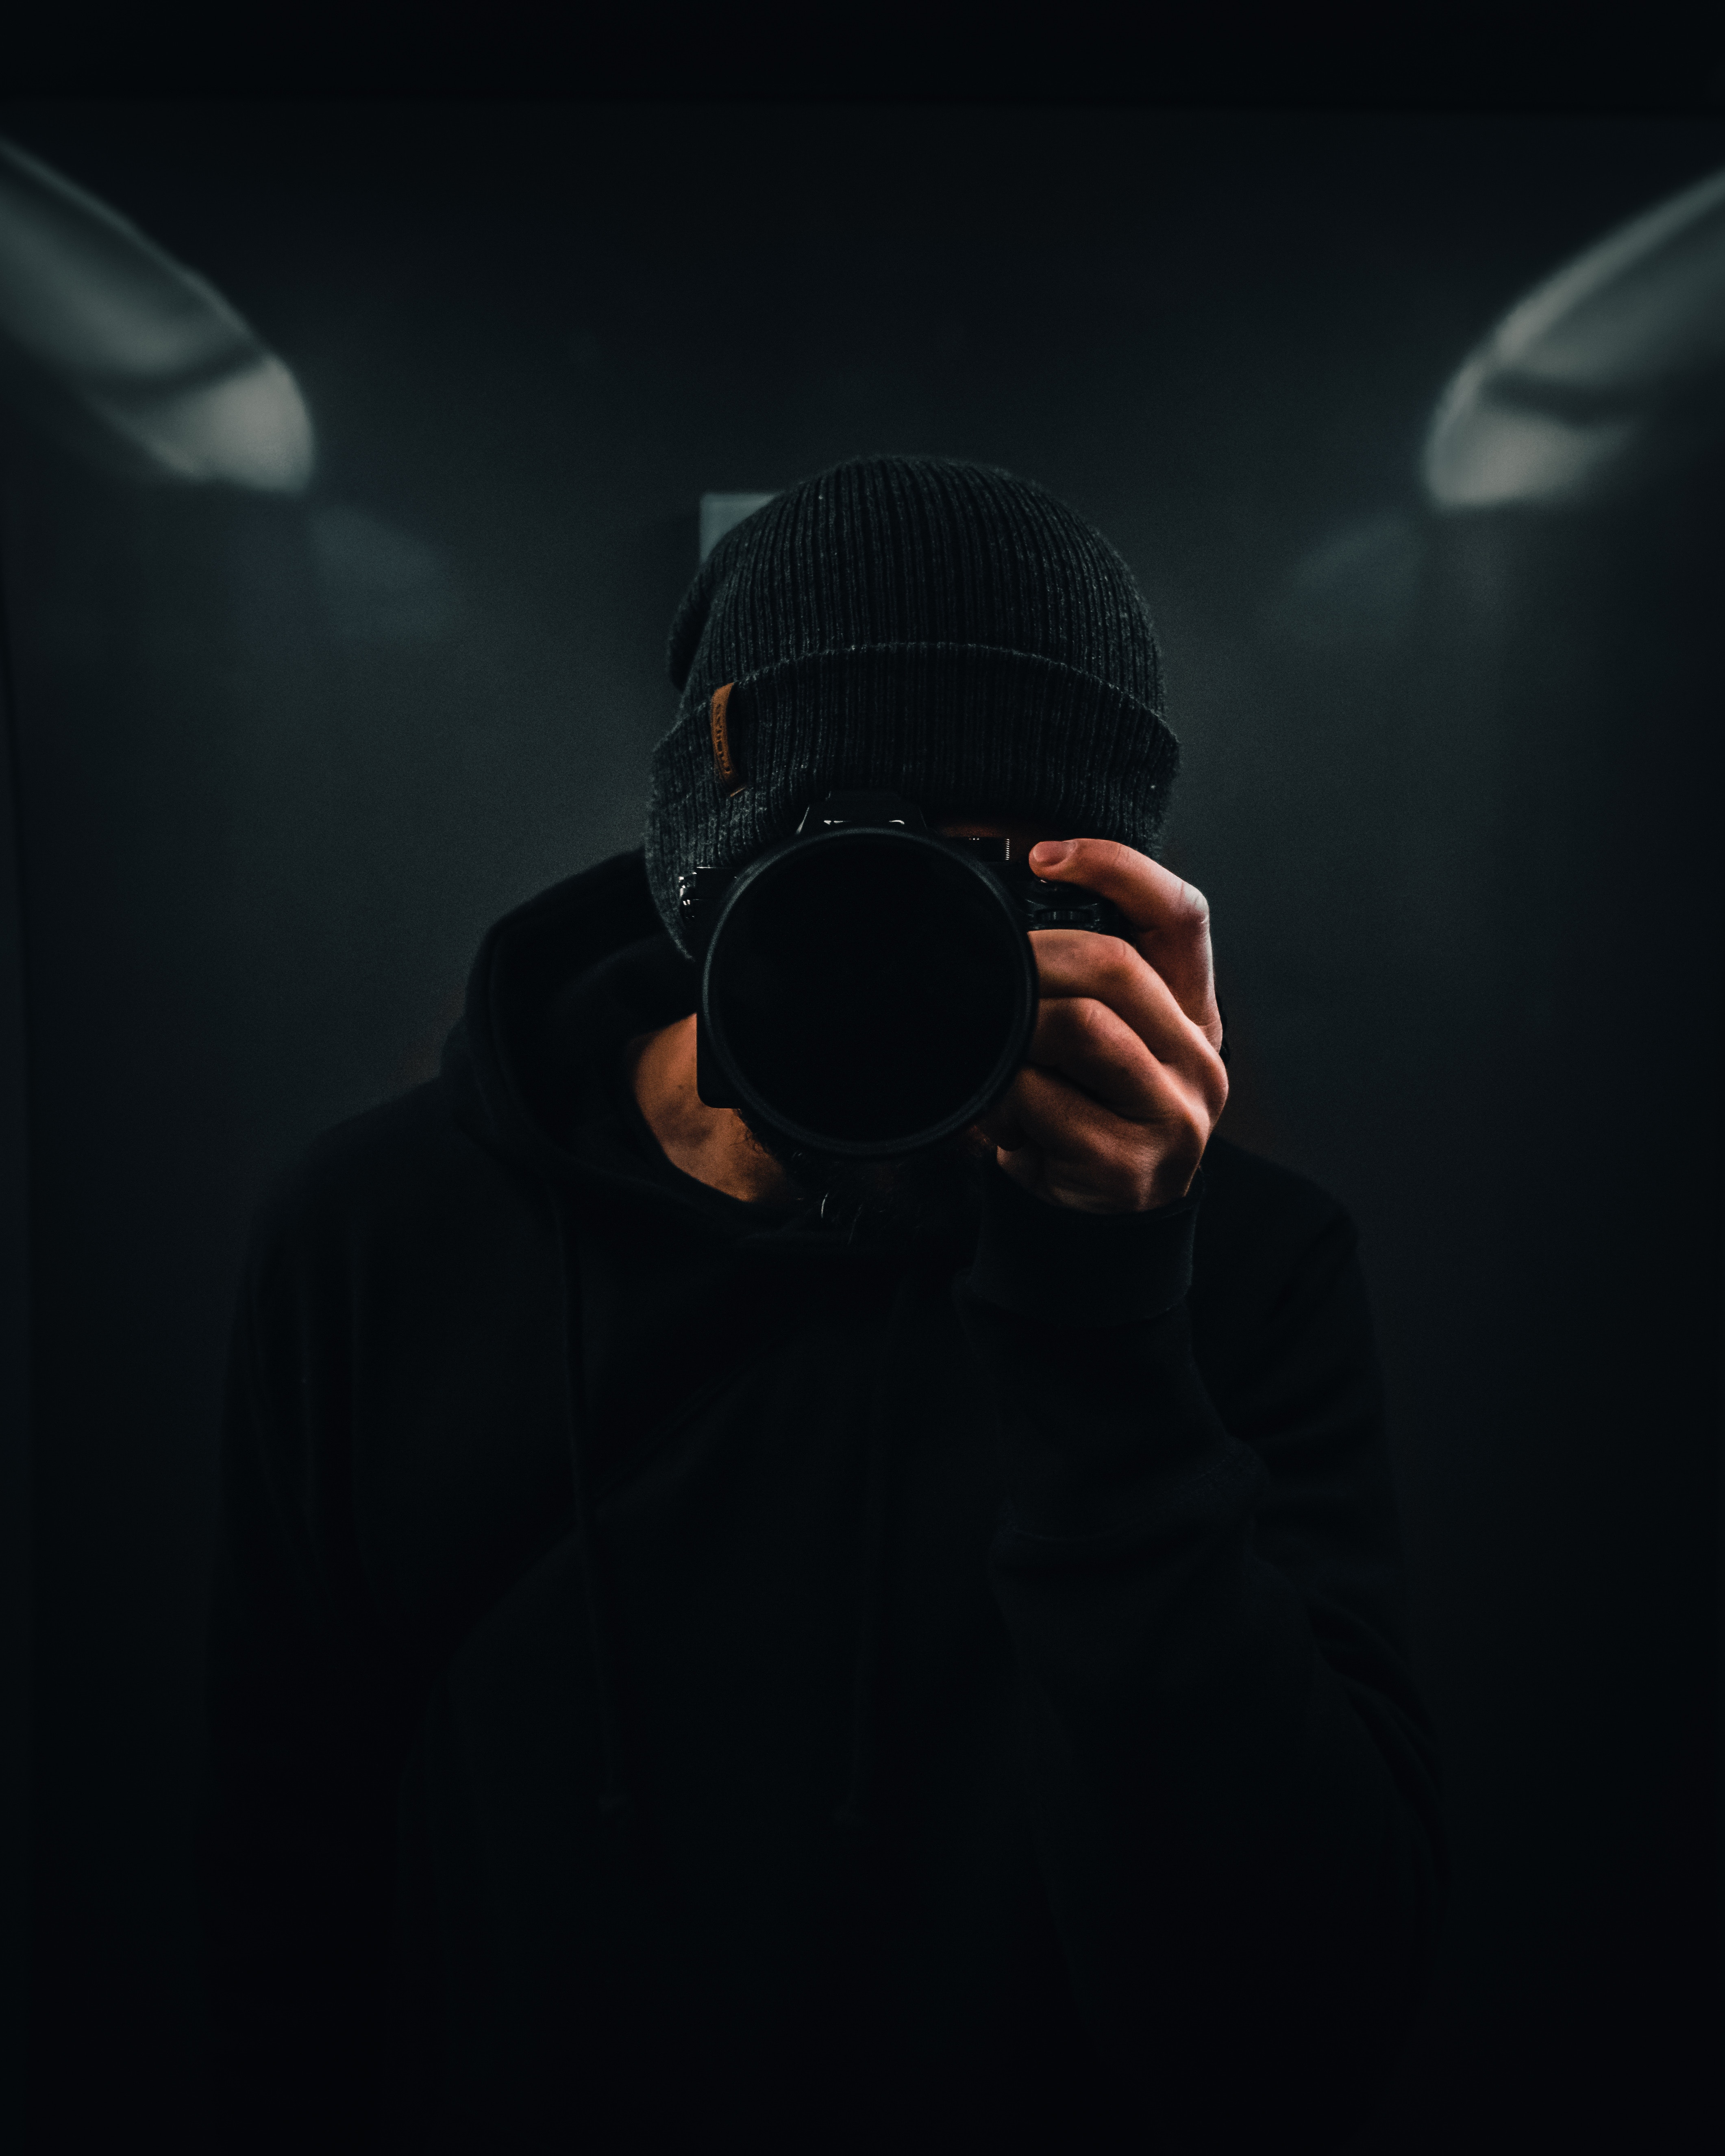 119219 download wallpaper Dark, Photographer, Camera screensavers and pictures for free